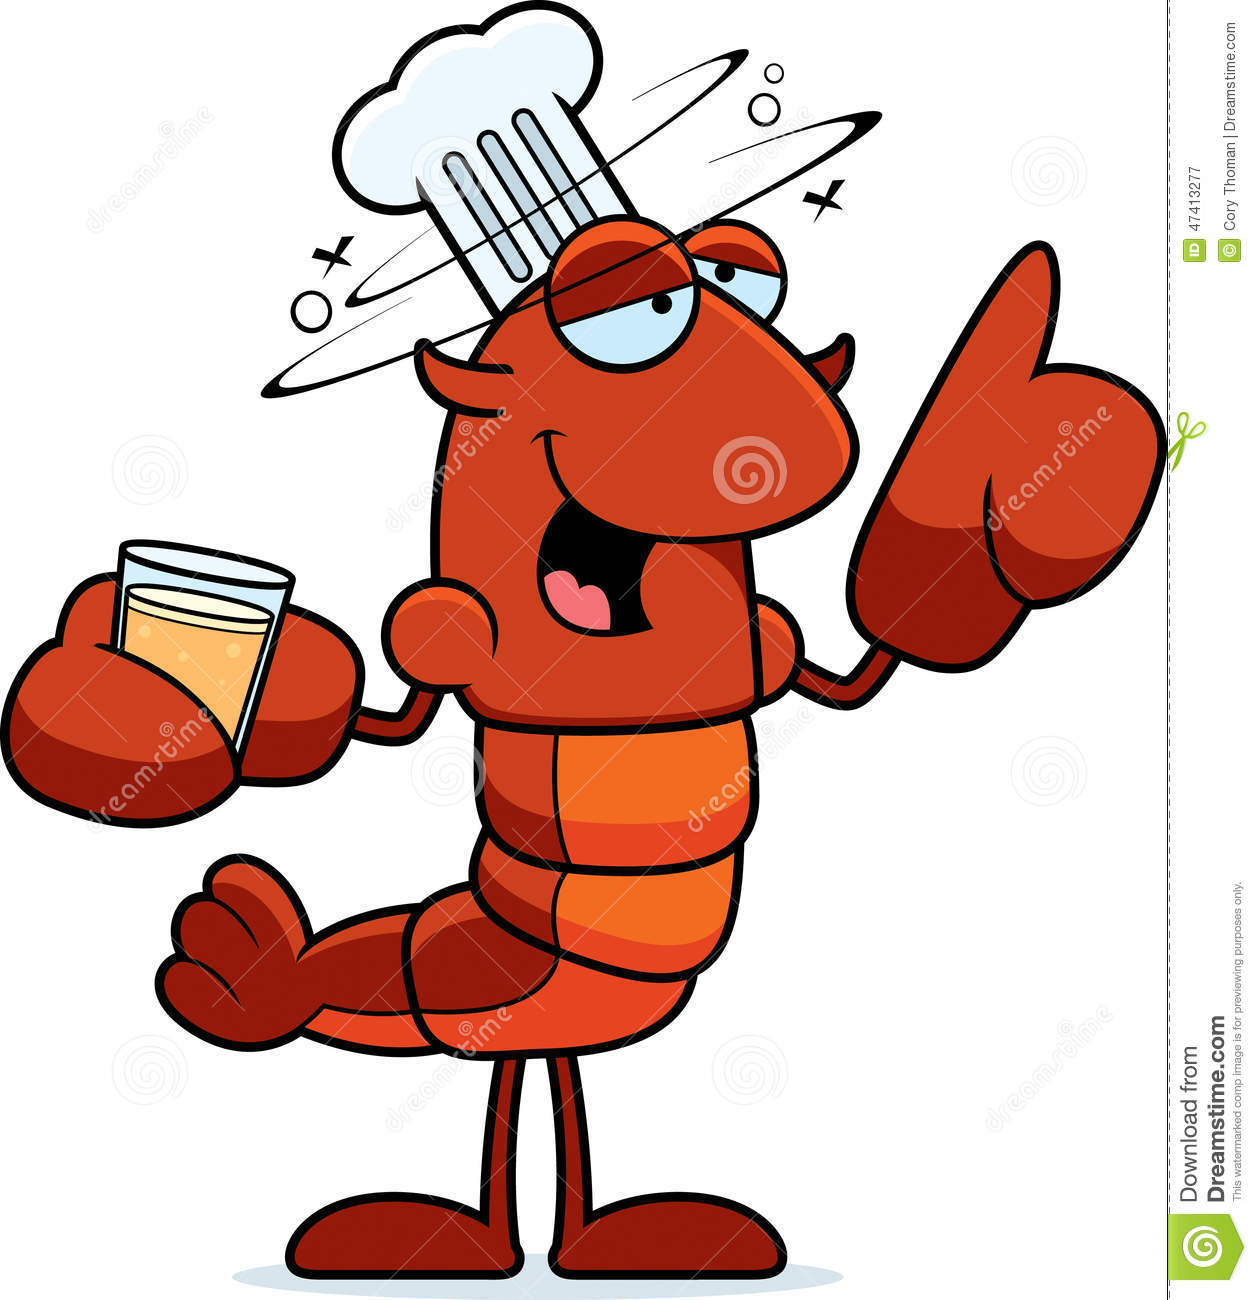 funny lobster clipart - photo #21